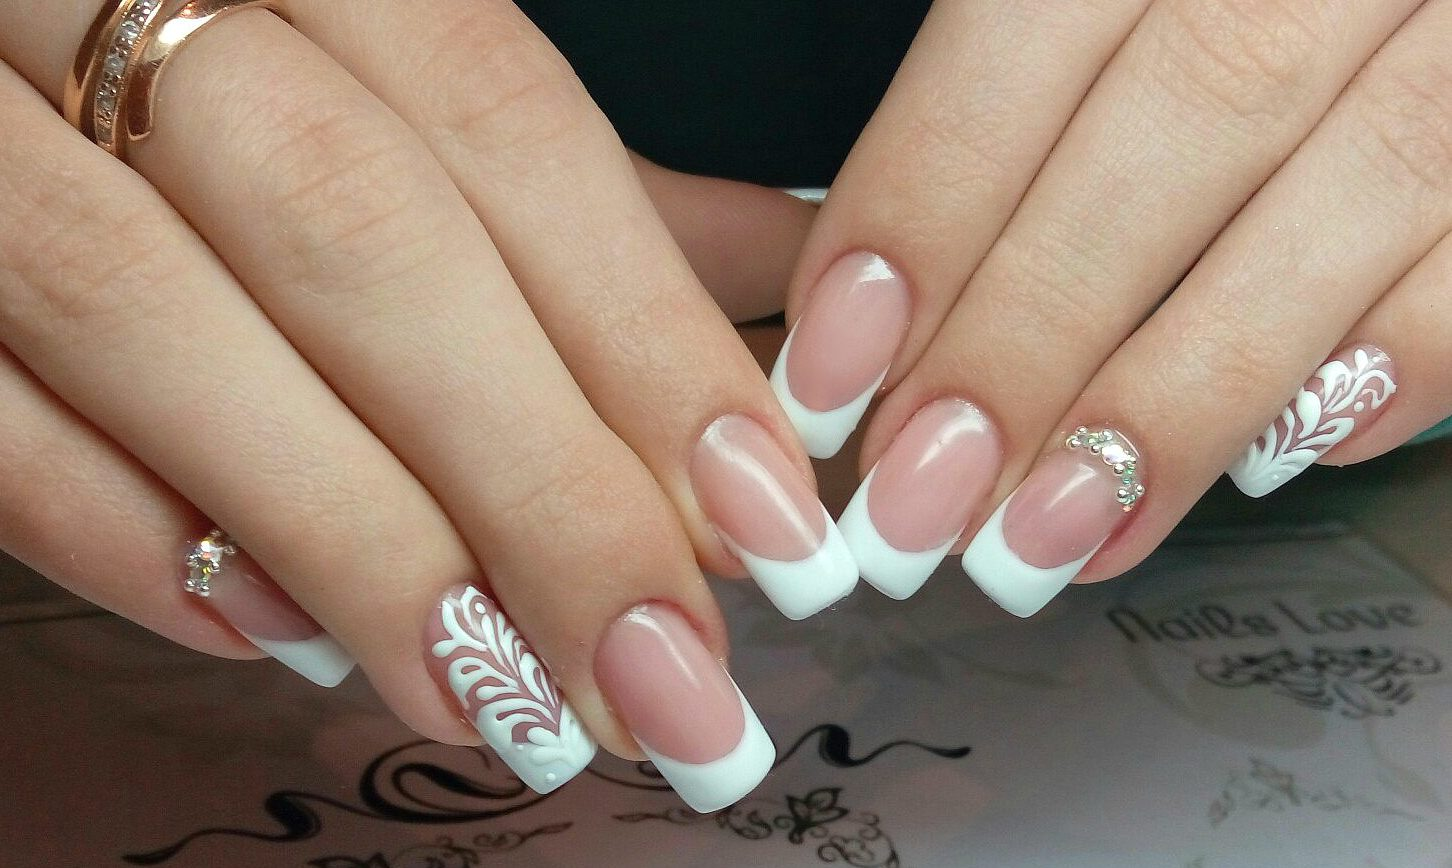 Wedding nails - Big Gallery of Designs | BestArtNails.com